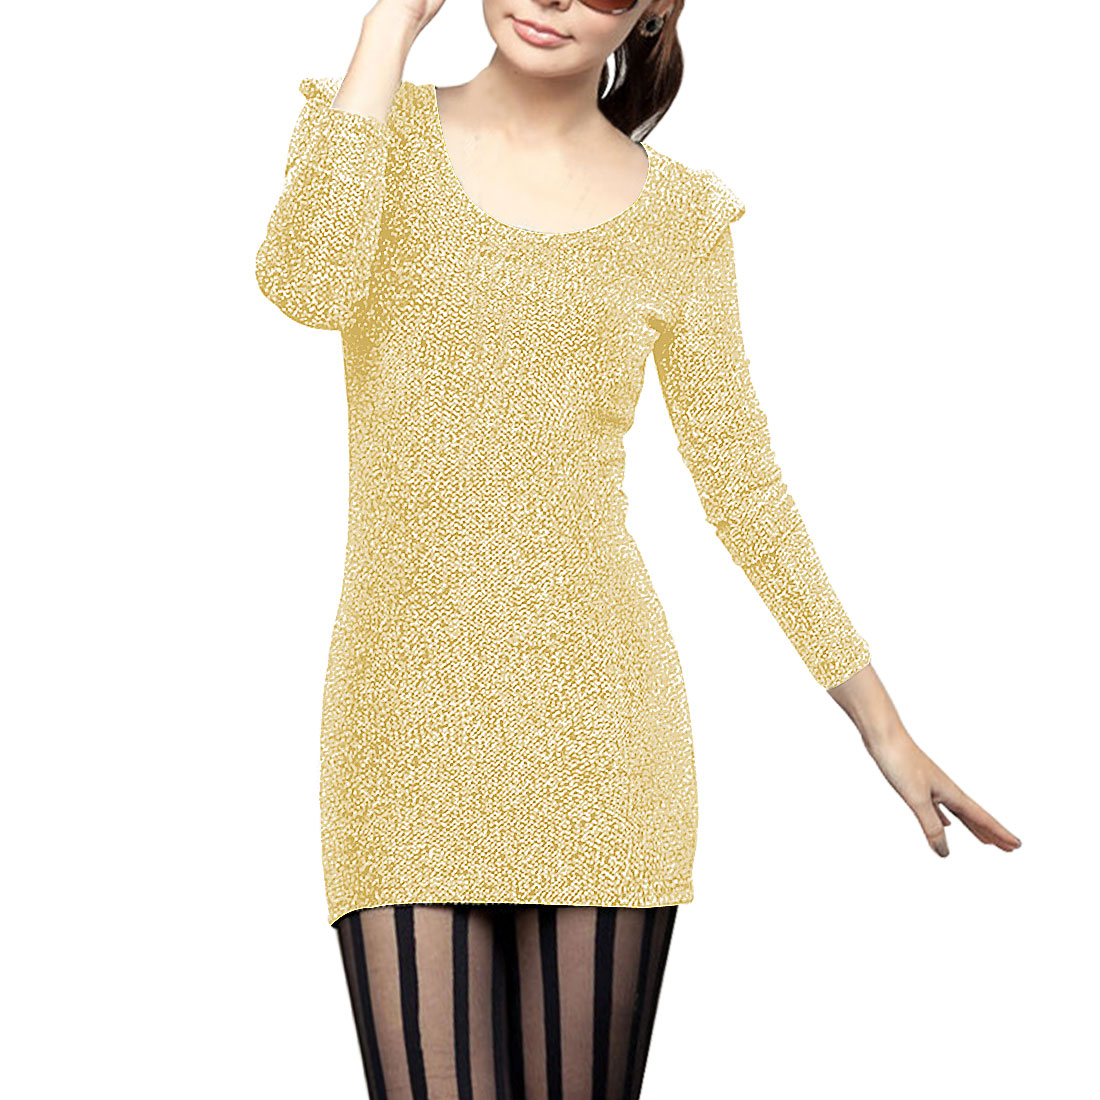 Women Beige Gold Tone Scoop Neck Long Sleeves Mini Dress XS